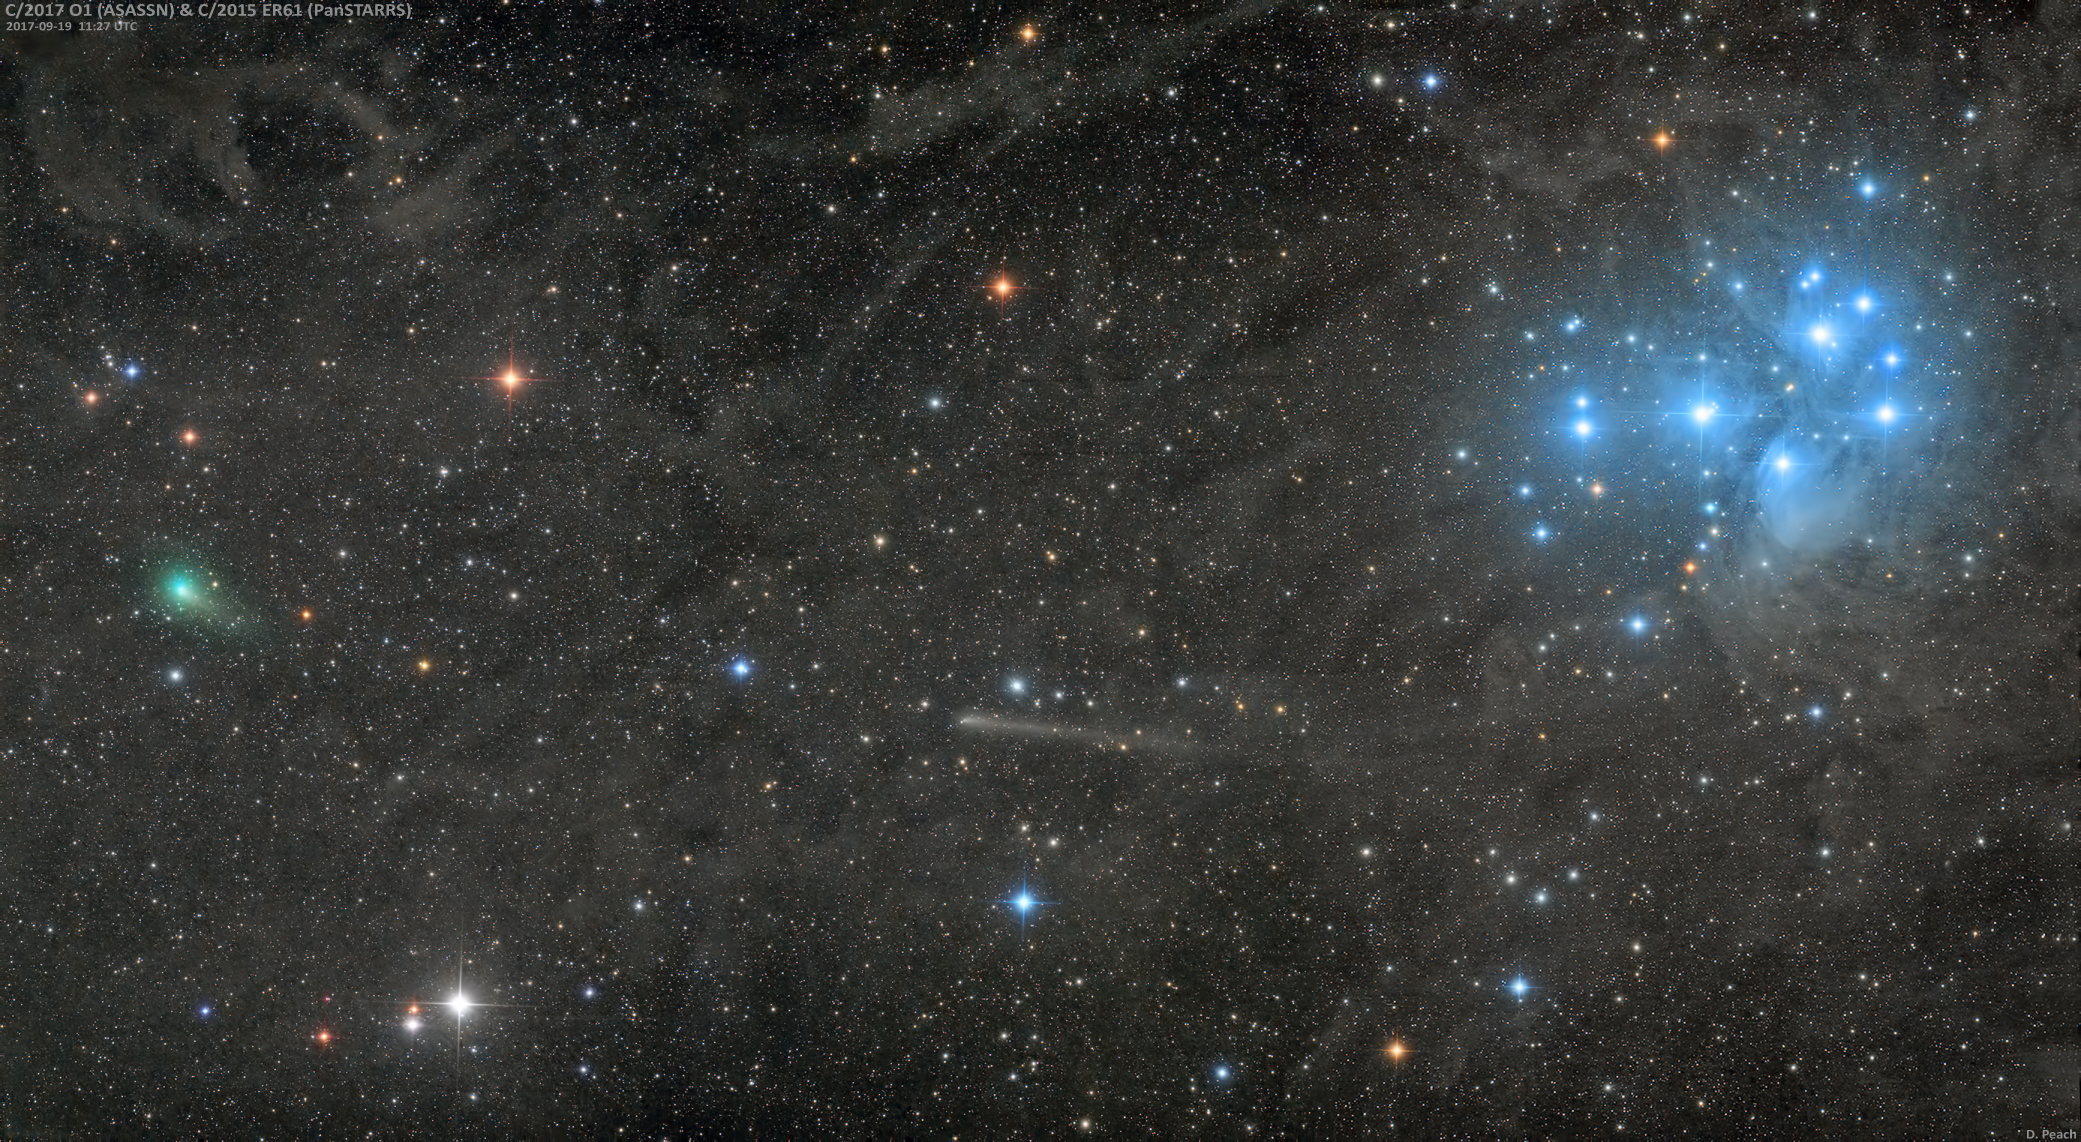 Two Comets and a Star Cluster